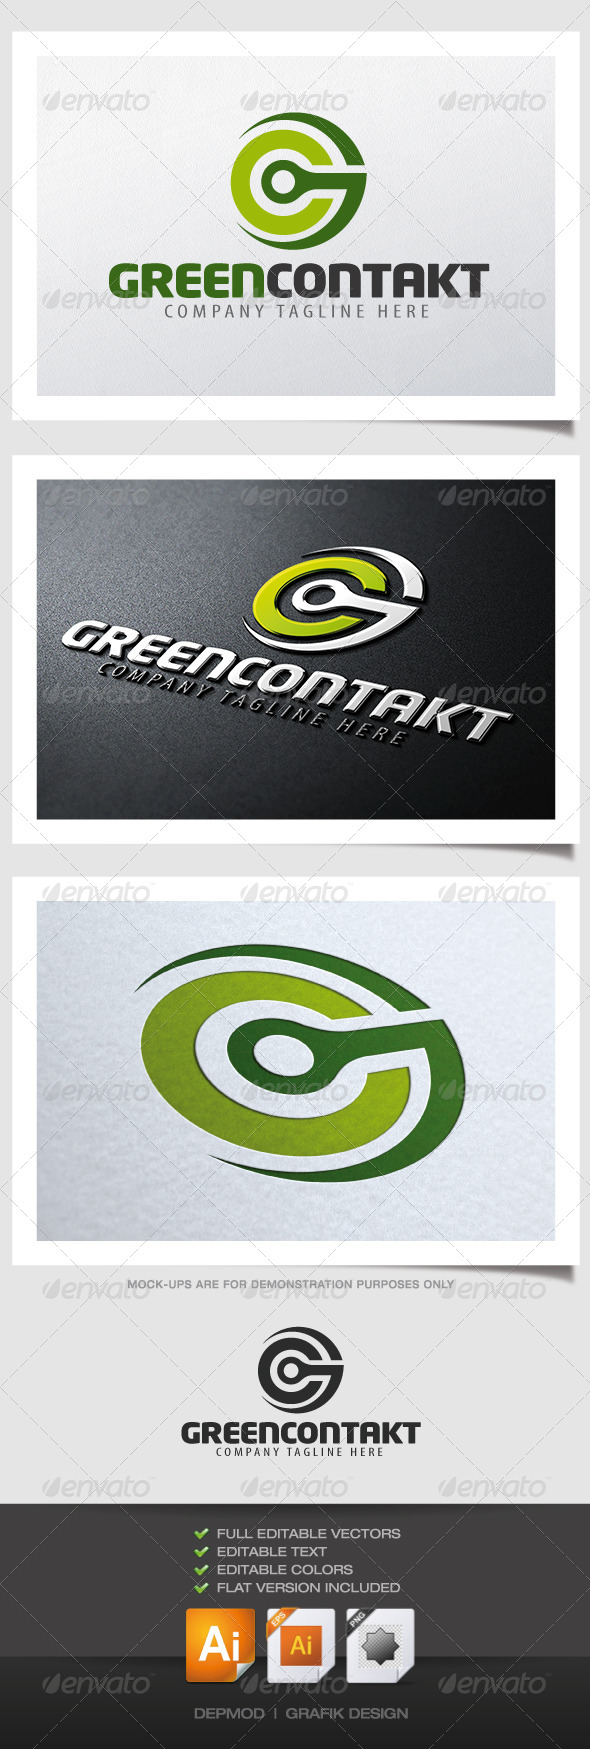 GraphicRiver Green Contakt Logo 4526246